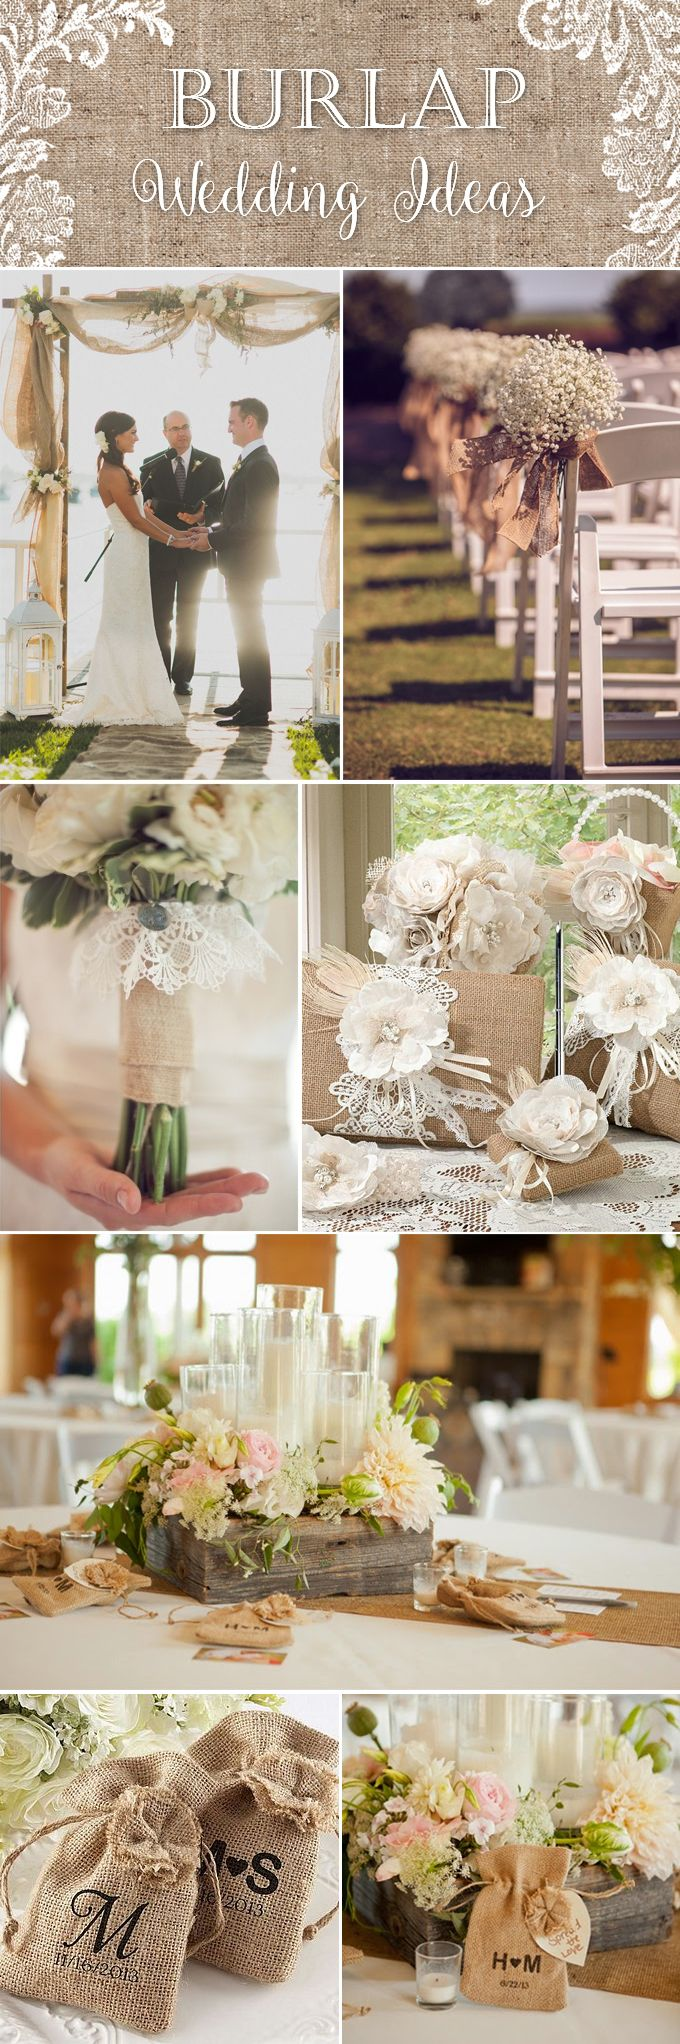 DIY Burlap wedding decorations and ideas for the country, rustic, and casual-chic bride and groom.